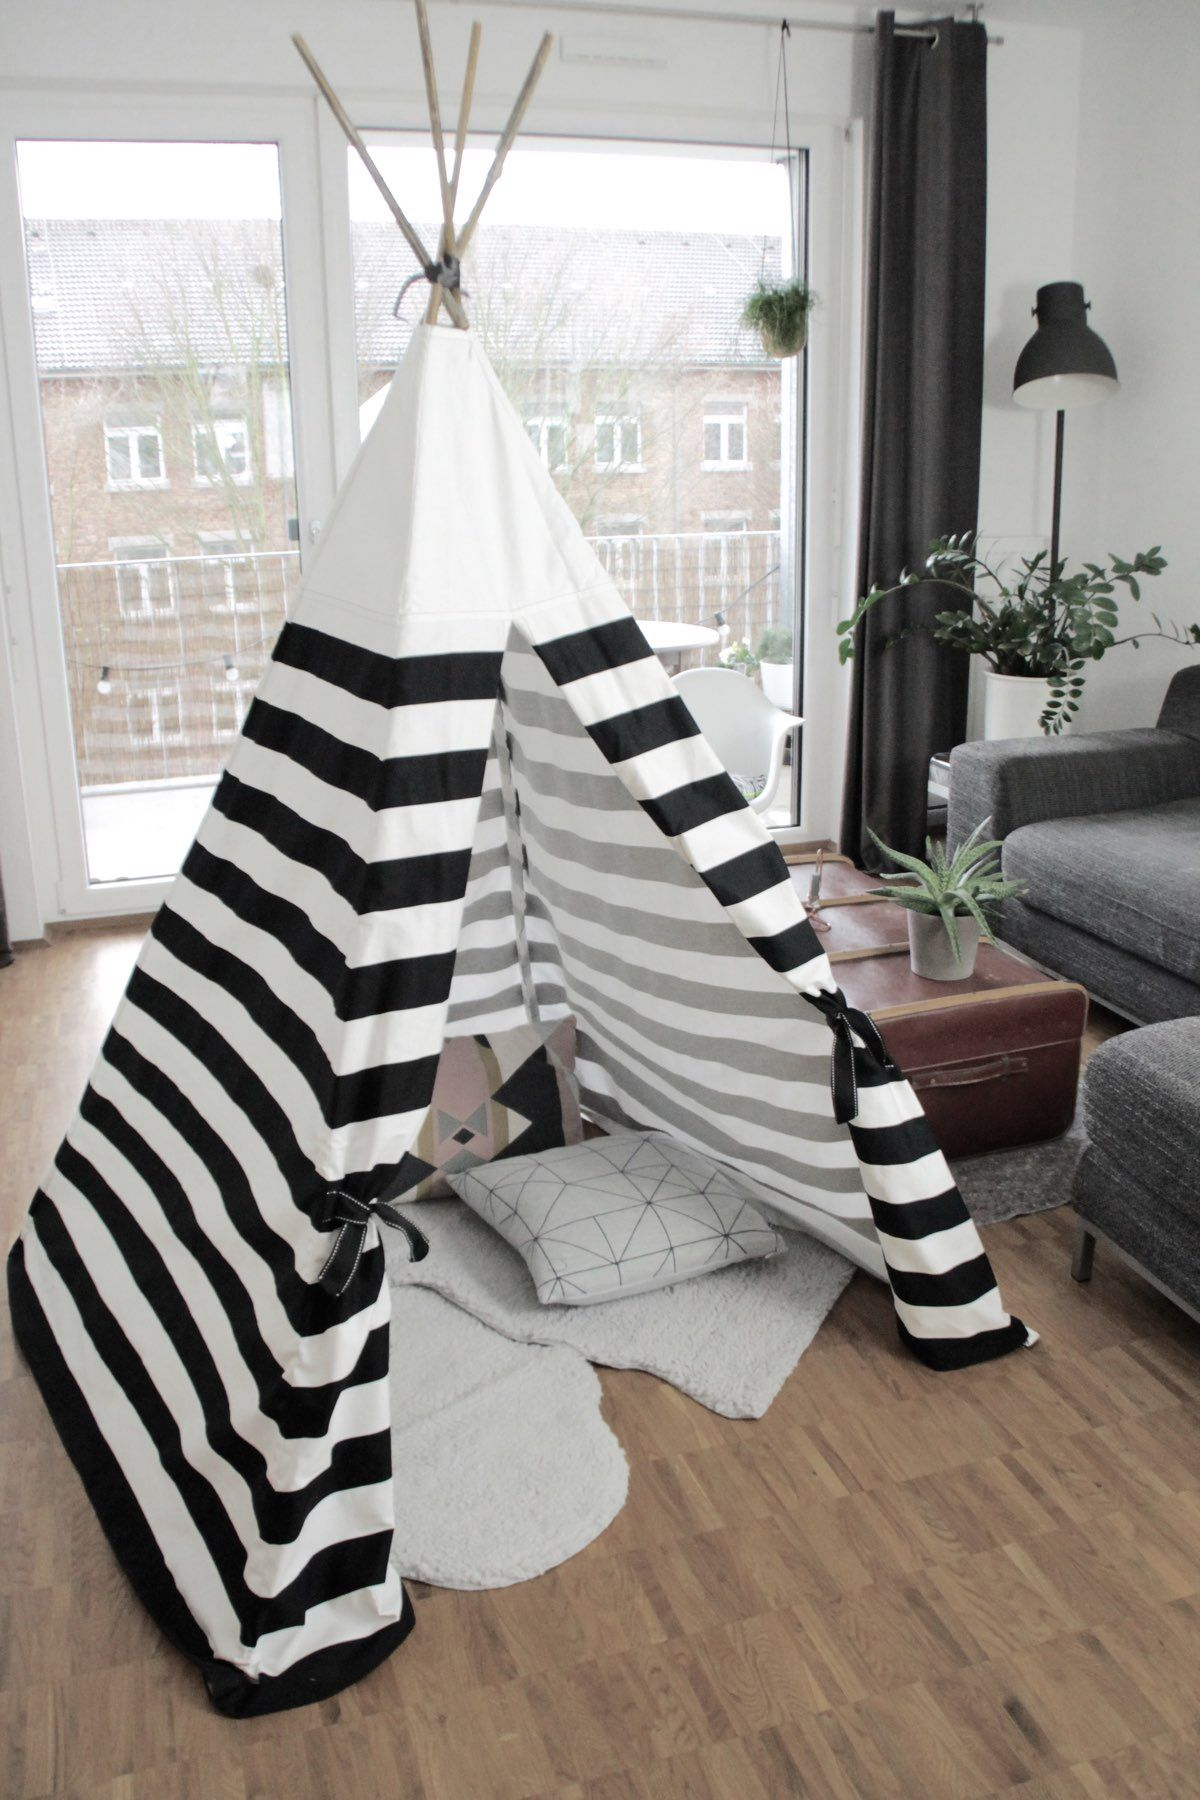 diy tipi anleitung zum selber n hen auf dem blog pinterest. Black Bedroom Furniture Sets. Home Design Ideas